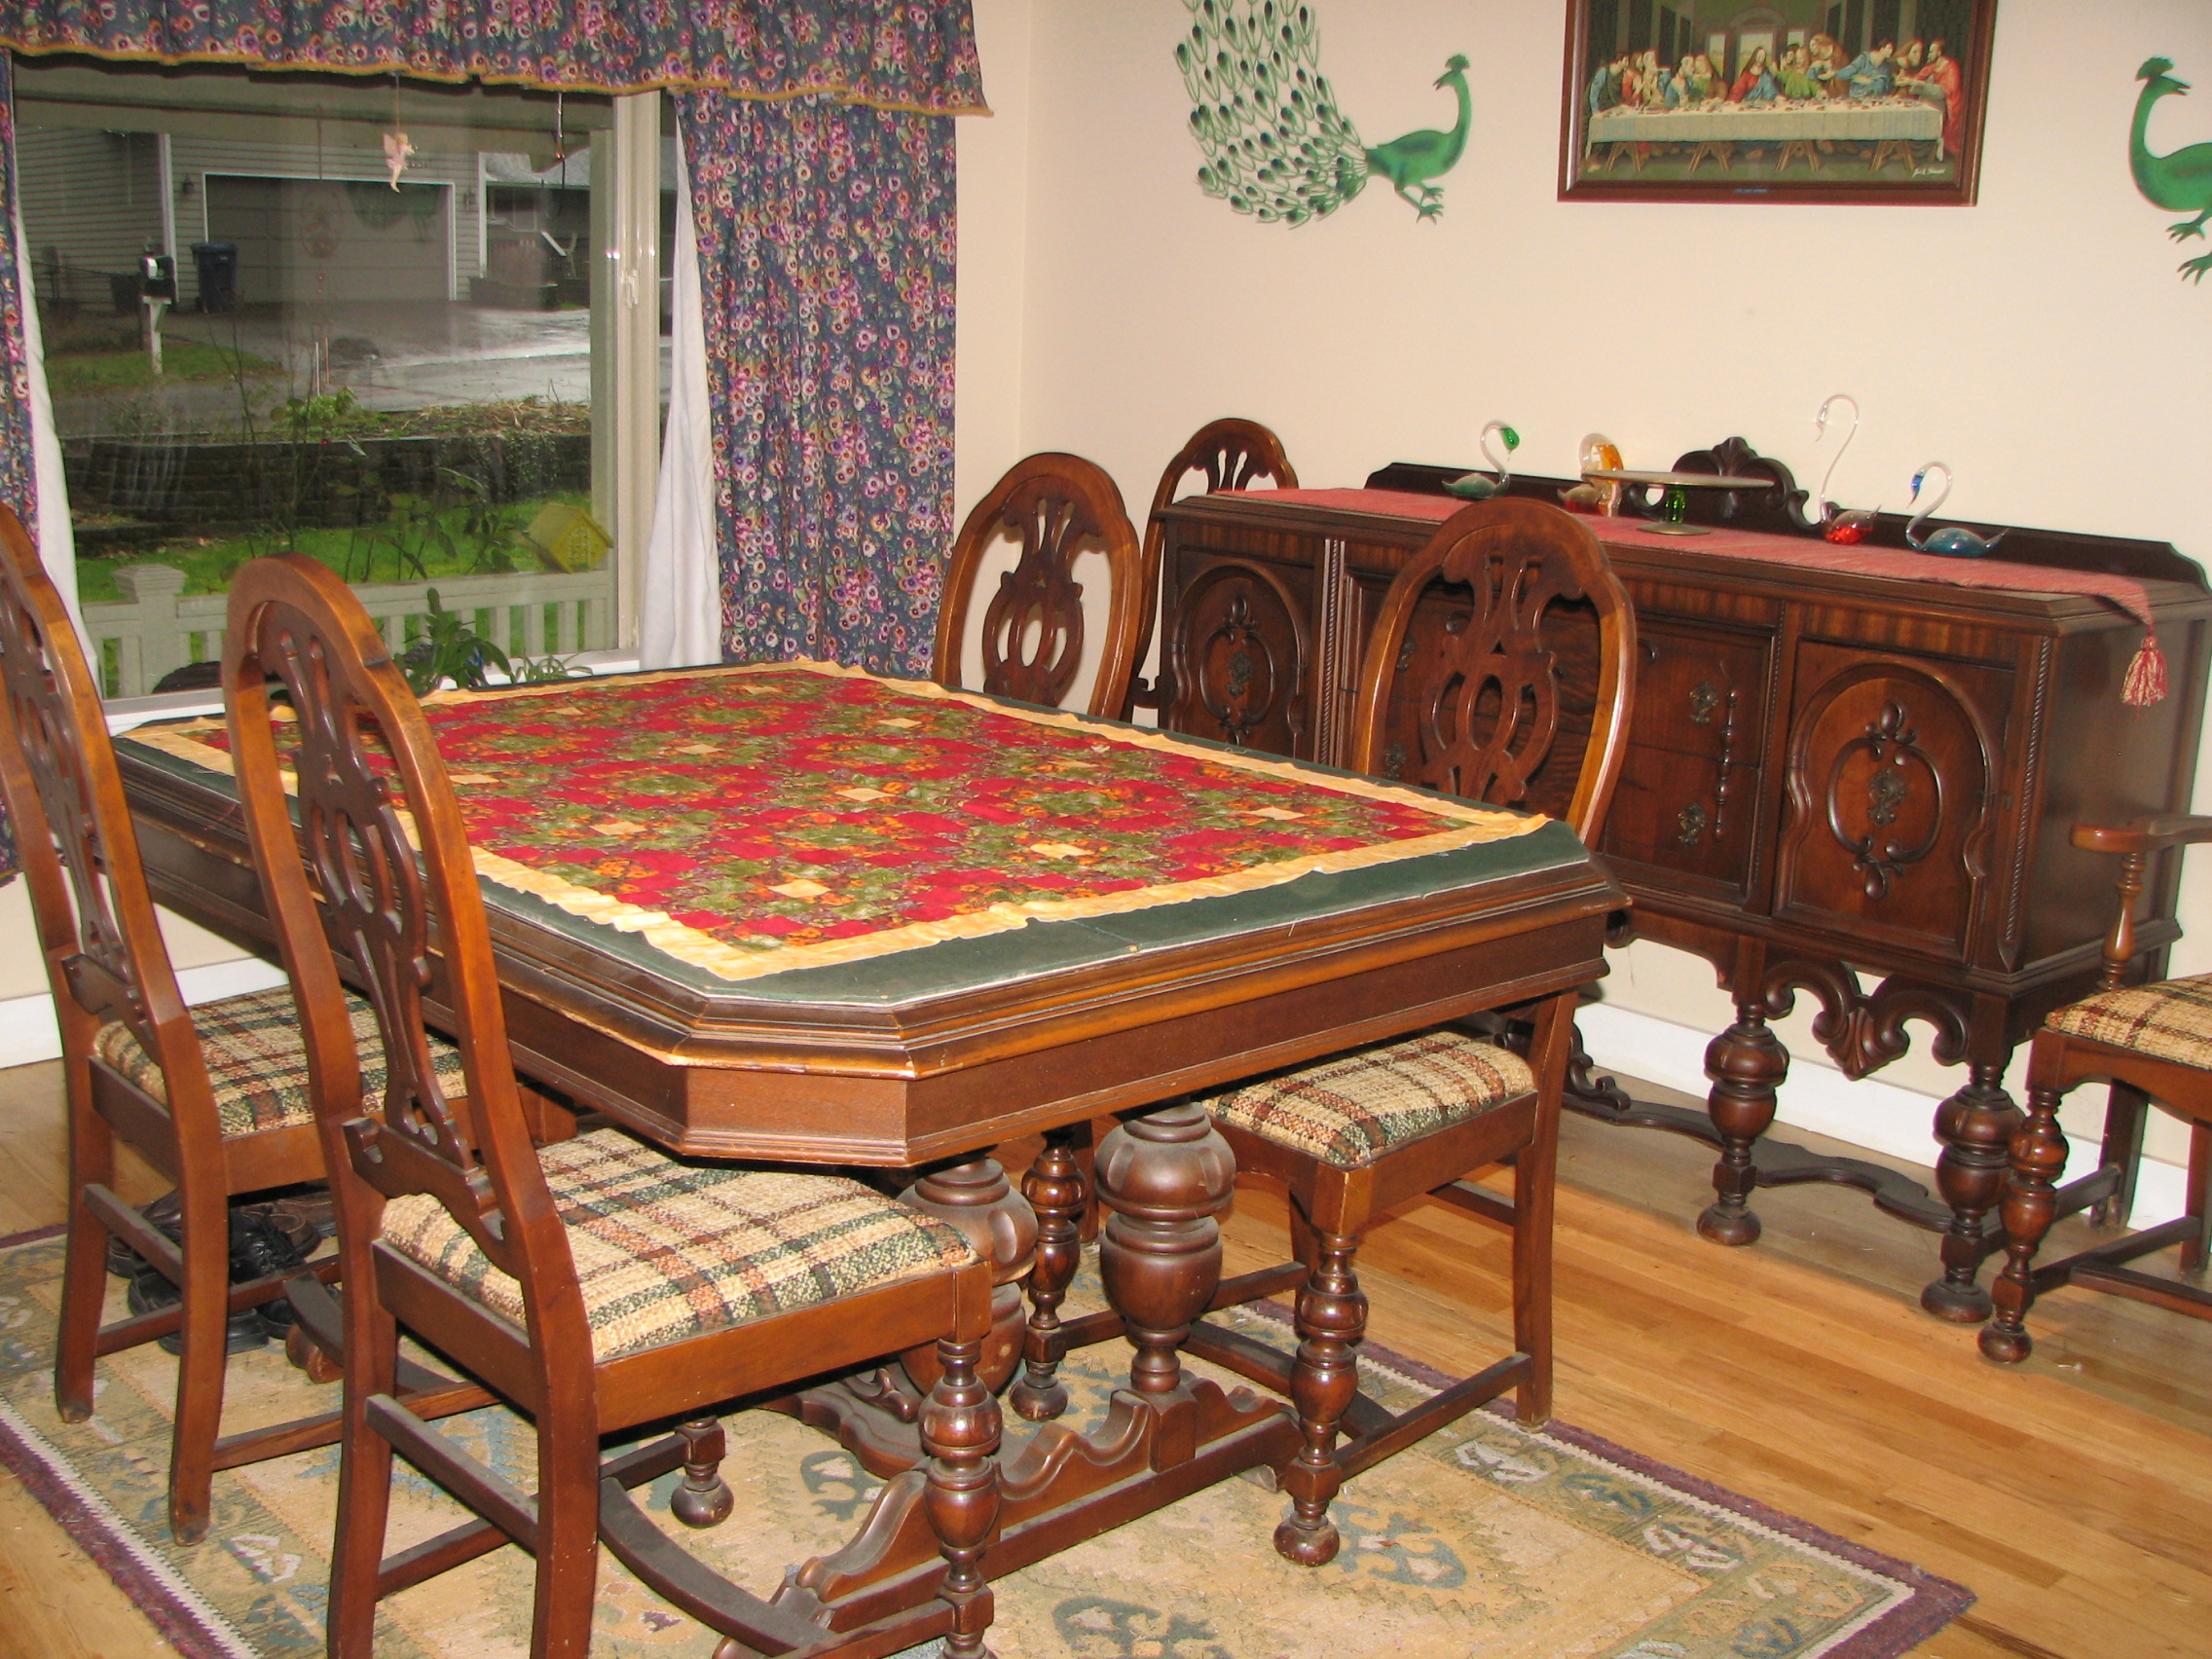 Antique Dining Room Set Has 6 Chairs Buffet And A Table With 2